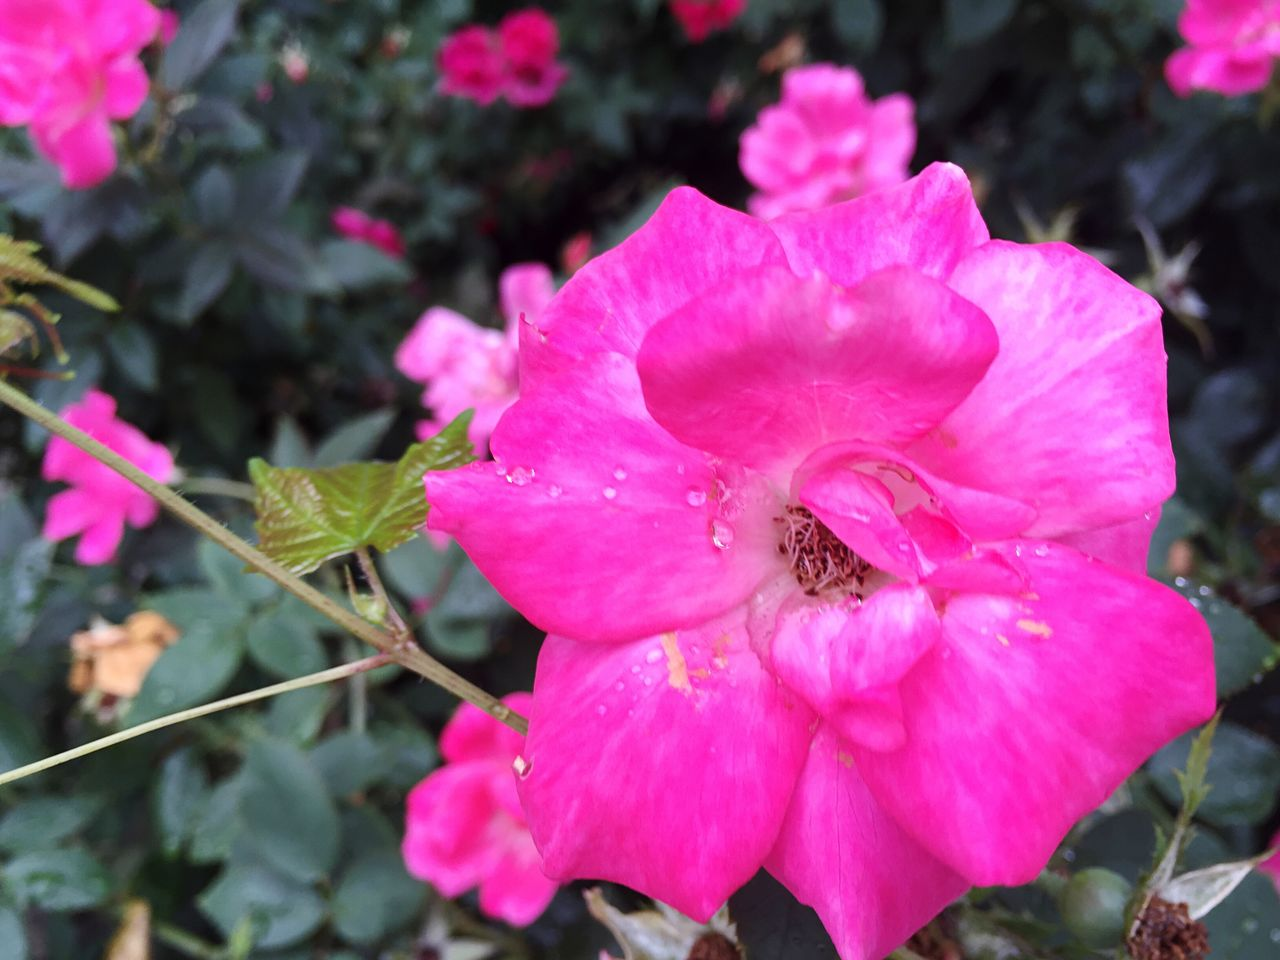 pink color, petal, flower, one animal, insect, animal themes, nature, fragility, animals in the wild, flower head, growth, beauty in nature, animal wildlife, high angle view, outdoors, no people, plant, day, close-up, freshness, blooming